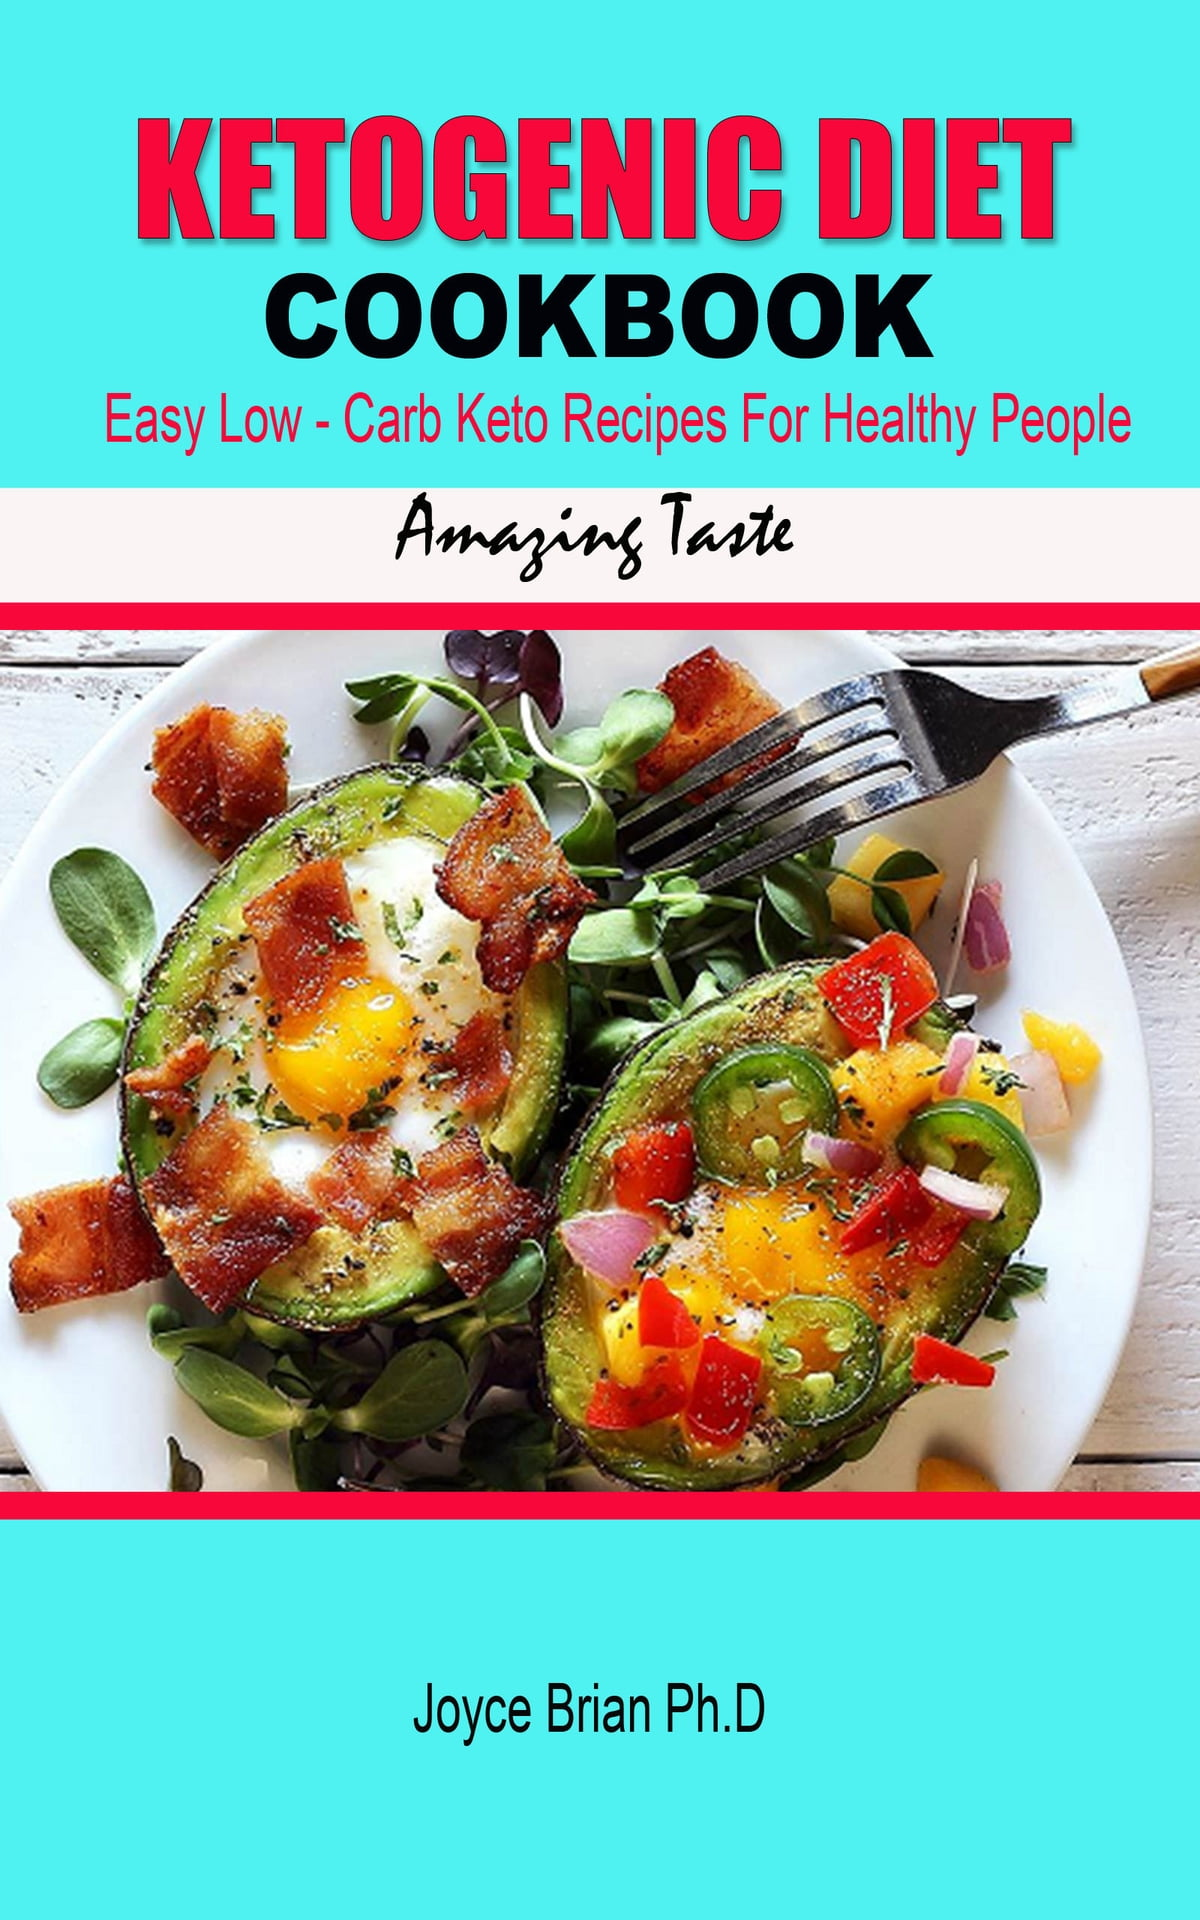 Ketogenic Diet Cookbook Easy Low Carb Keto Recipes For Healthy People Ebook By Joyce Brian 9780463439807 Rakuten Kobo United States